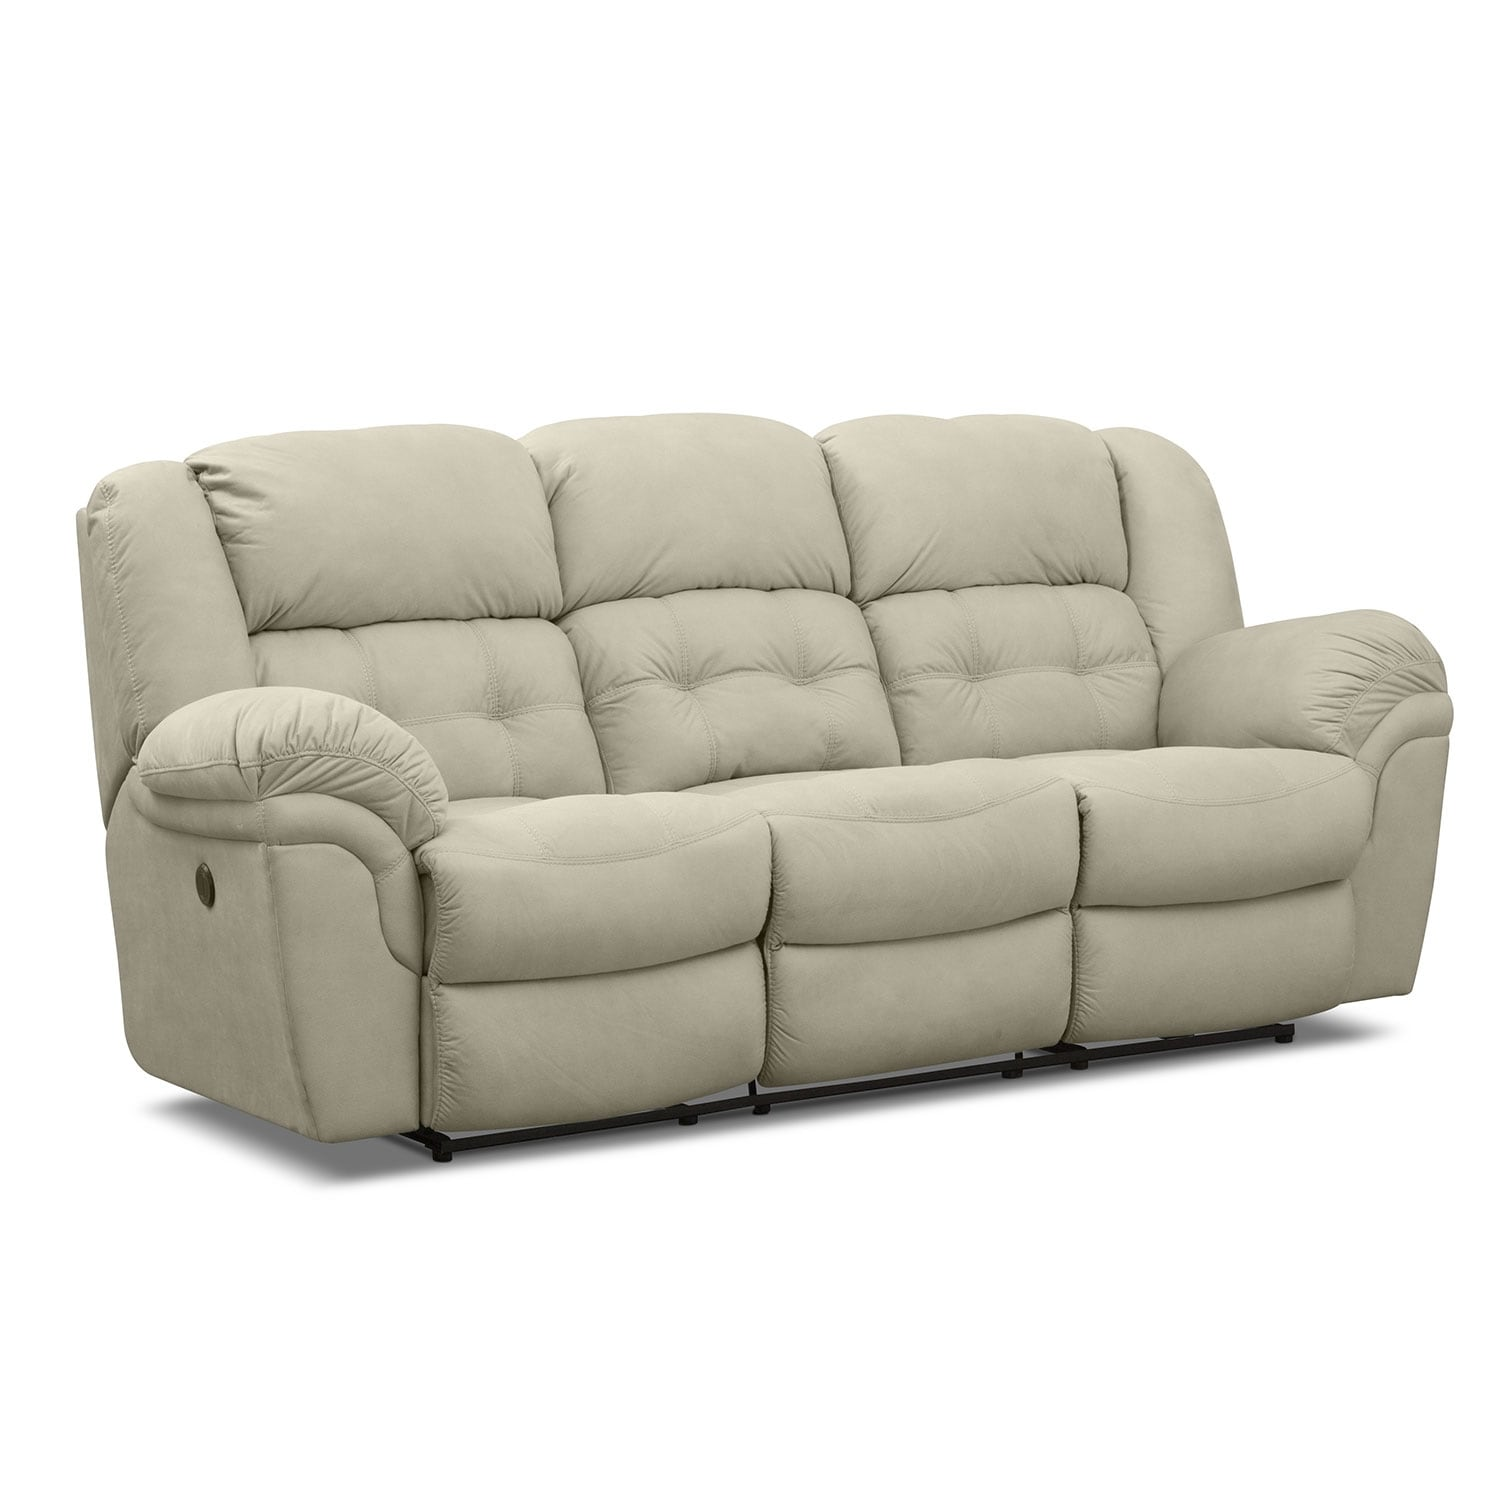 Benton beige reclining sofa Loveseats that recline